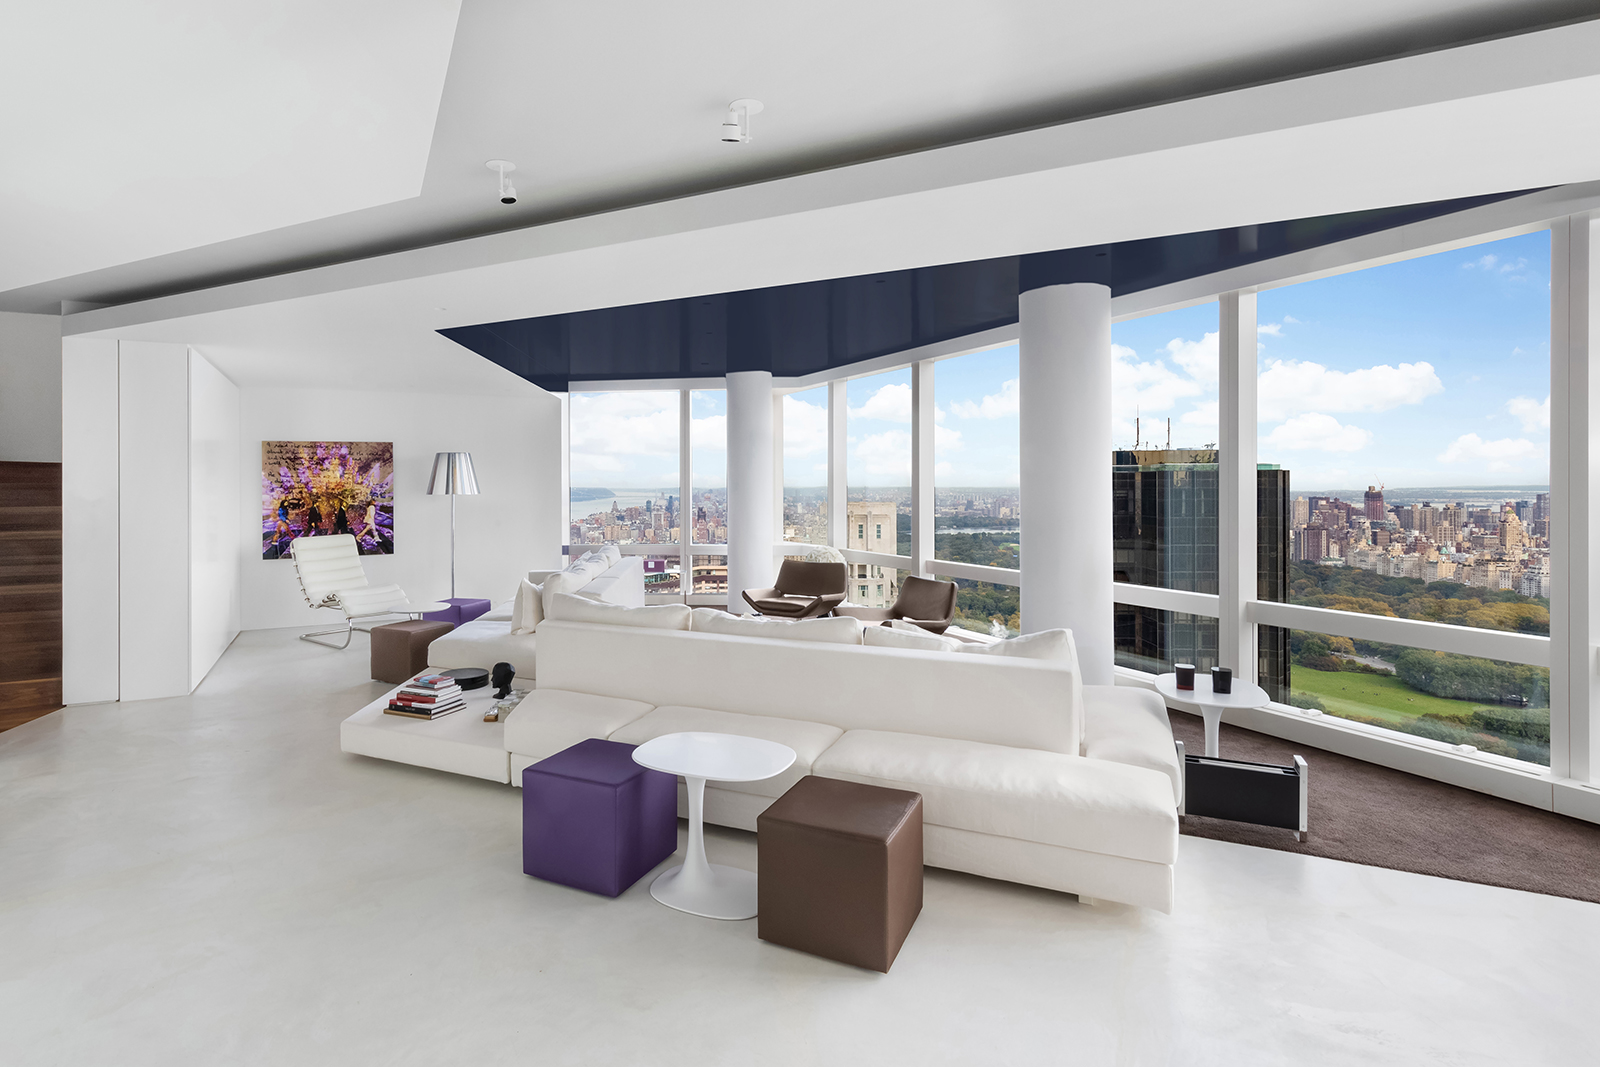 Check Out This Stunning Time Warner Center Residence With Central Park Views Asking $18.75 Million